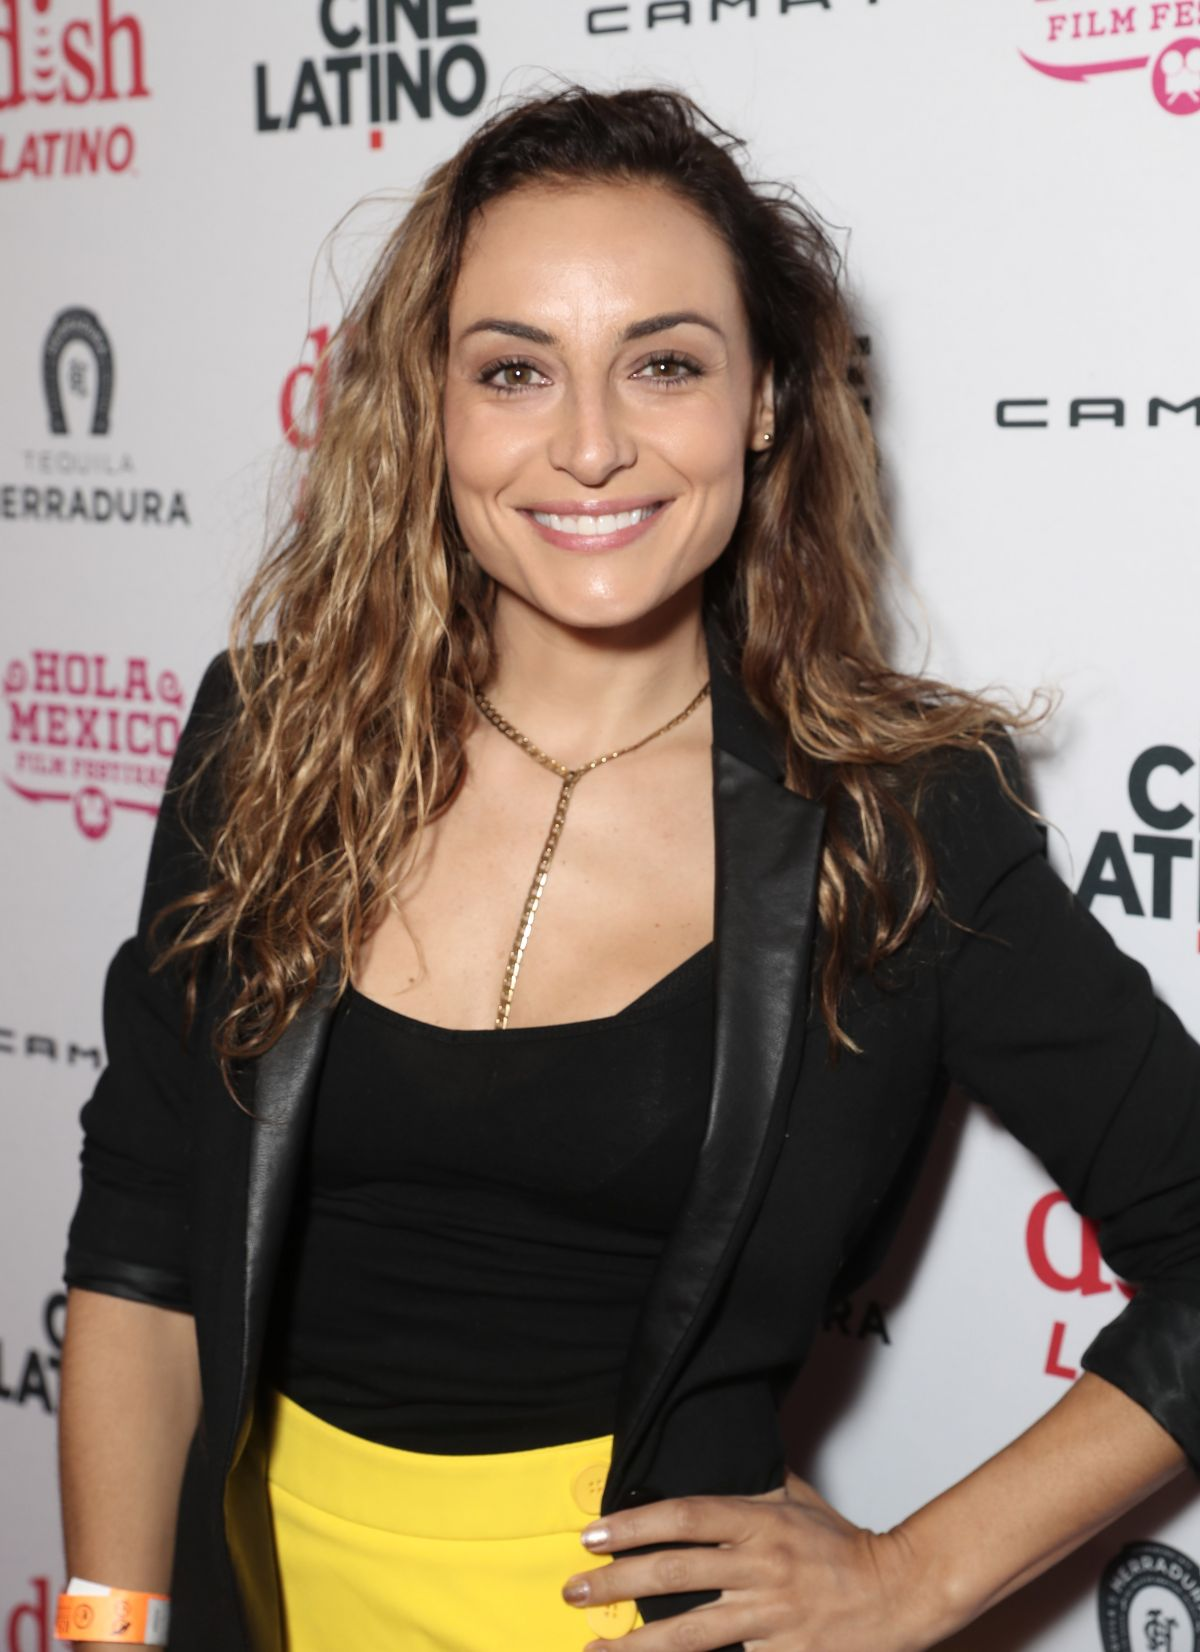 Celebrity Marimar Vega nudes (25 photo), Topless, Bikini, Boobs, swimsuit 2015